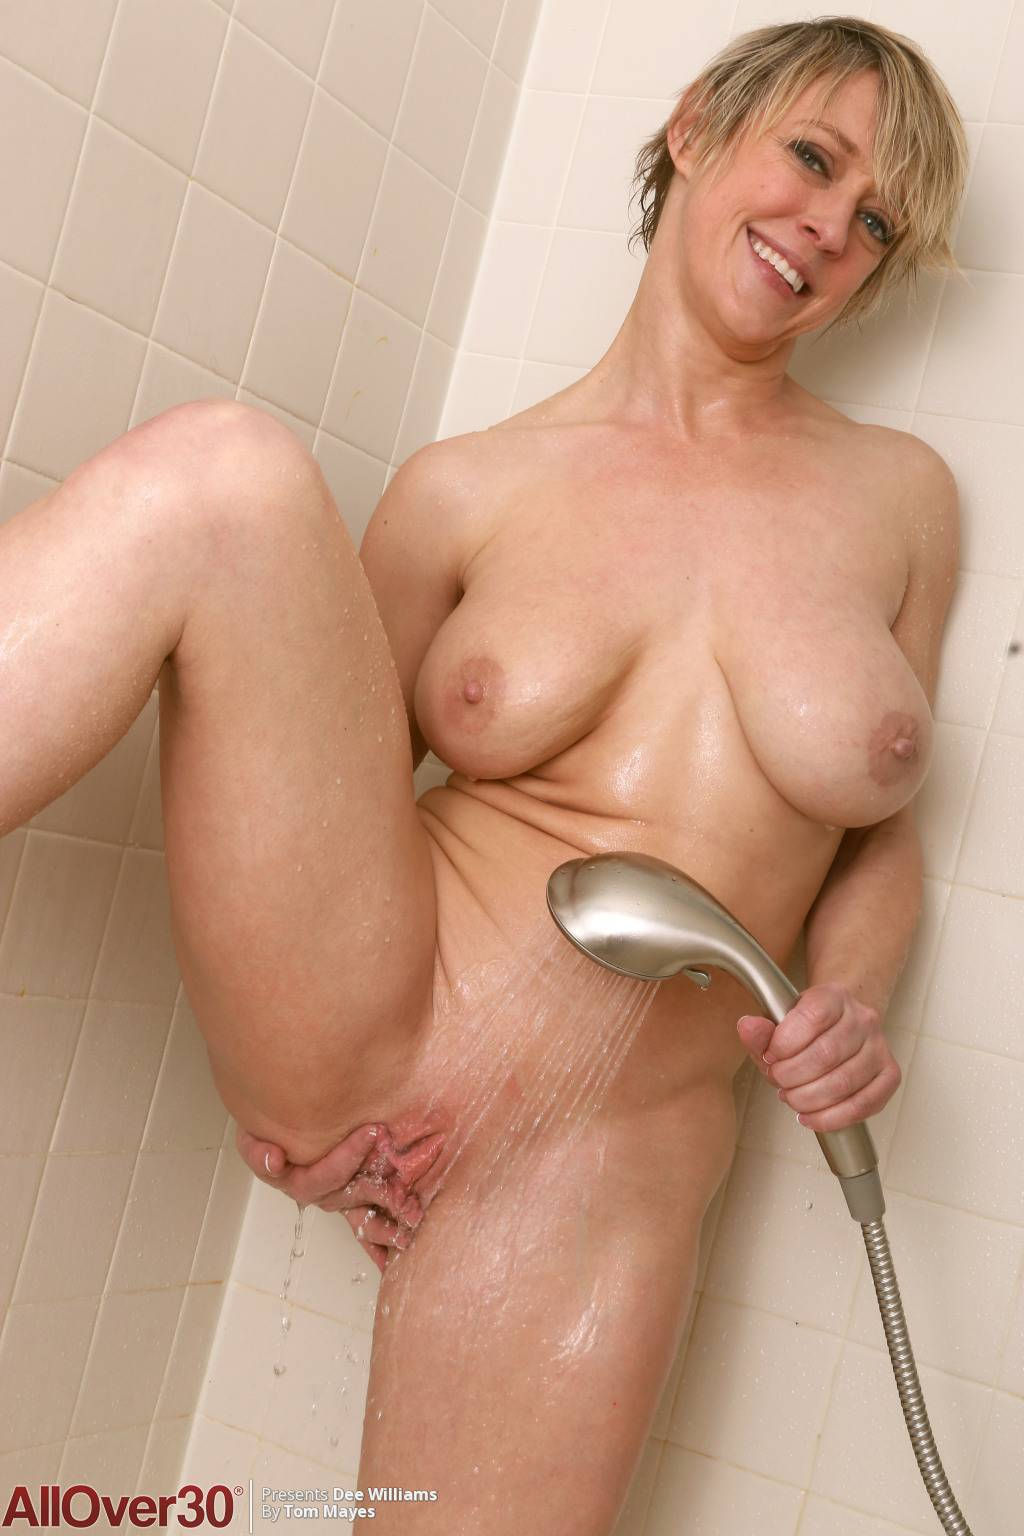 Blonde mature Dee Williams playing with her pink pussy on the shower at AllOver30